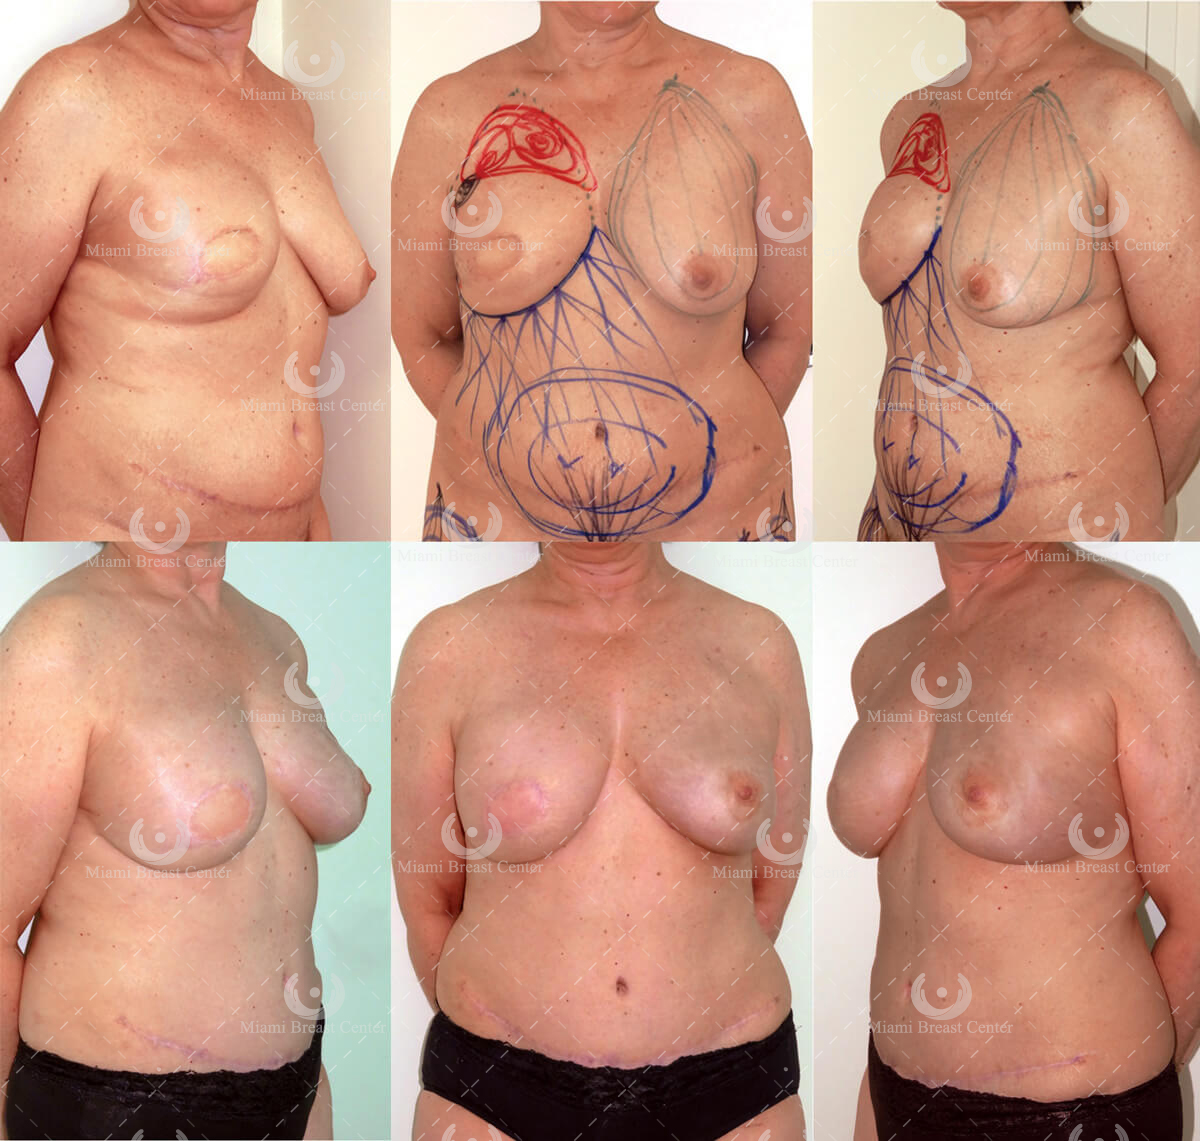 Breast inhancement without surgery